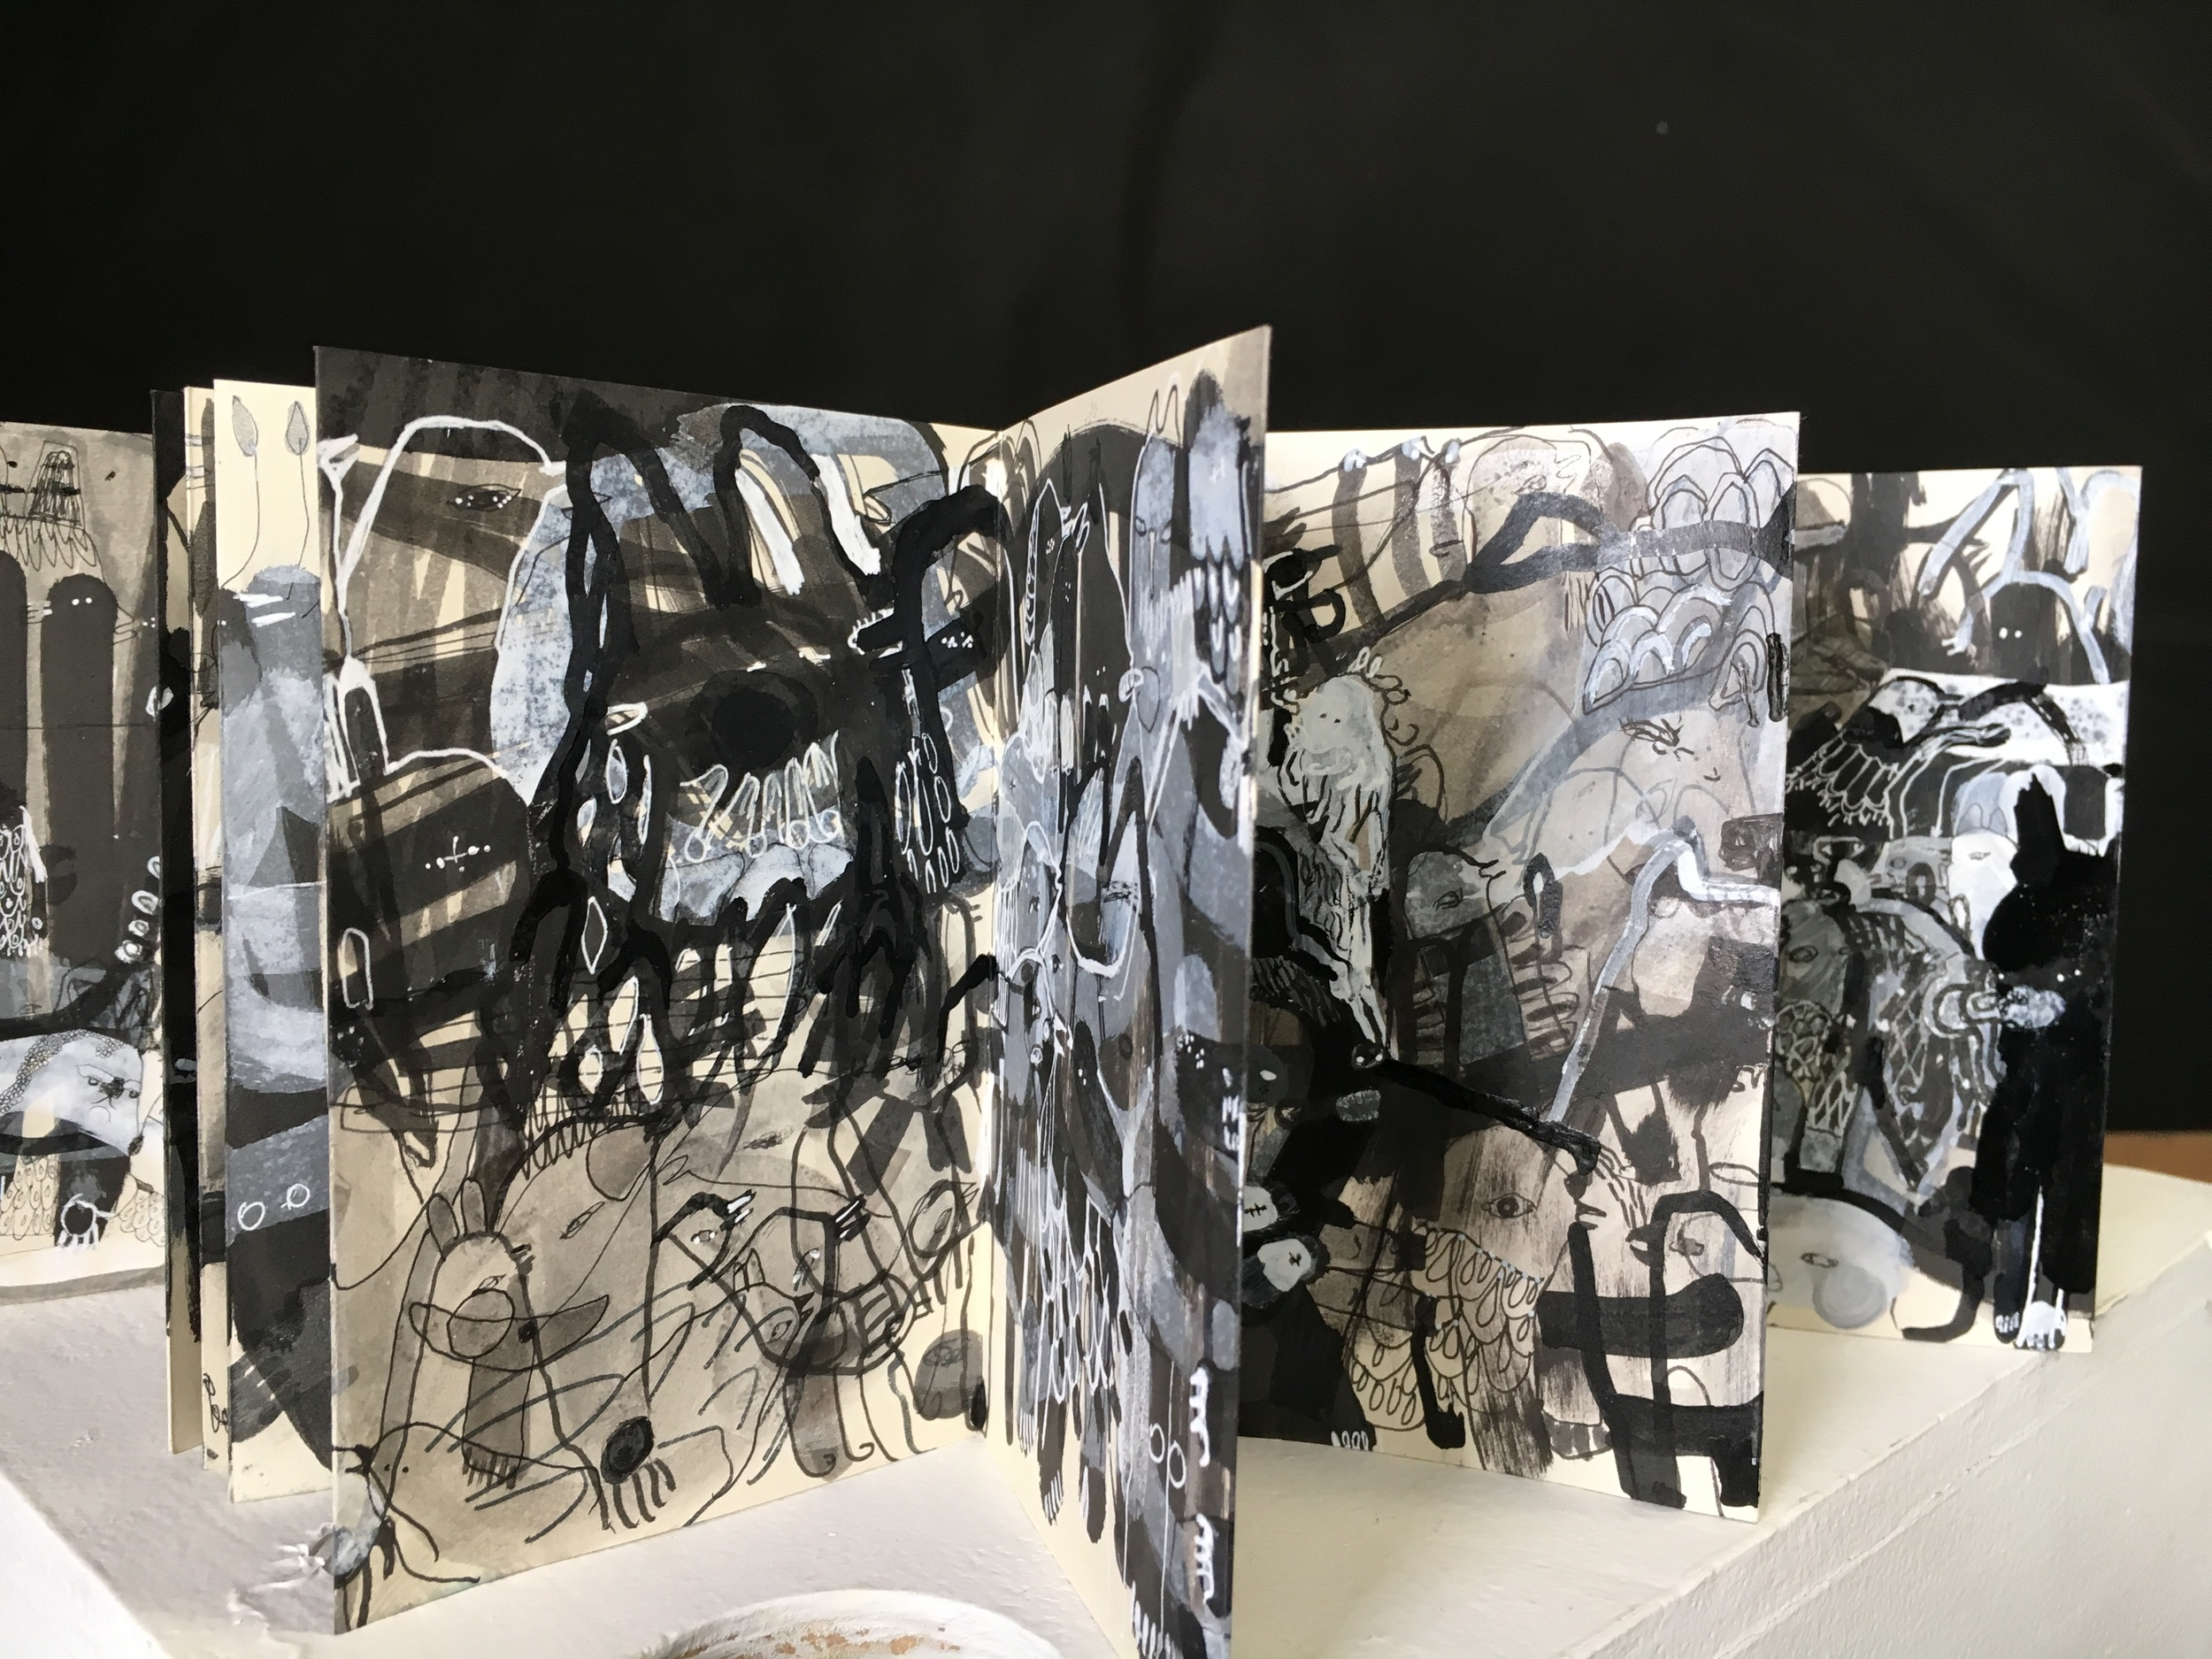 Orihon Miniature   Accordion Book 1 - Birds and Beasts     3.5 x 5.5 inches (60 pages)   Ink, dye and watercolor on 11lb cream drawing paper    2015